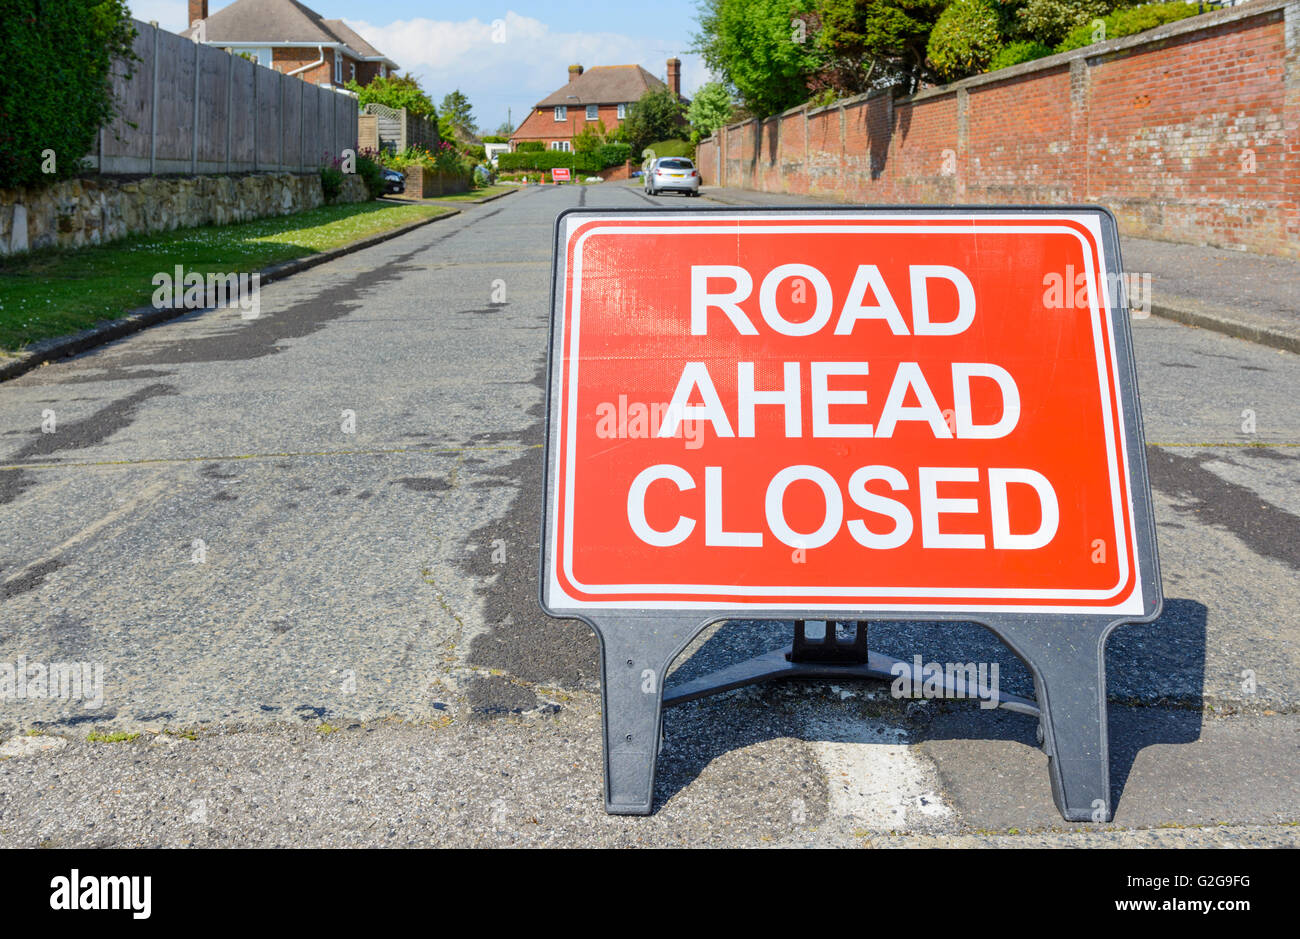 Road ahead closed sign on a road in the UK. - Stock Image